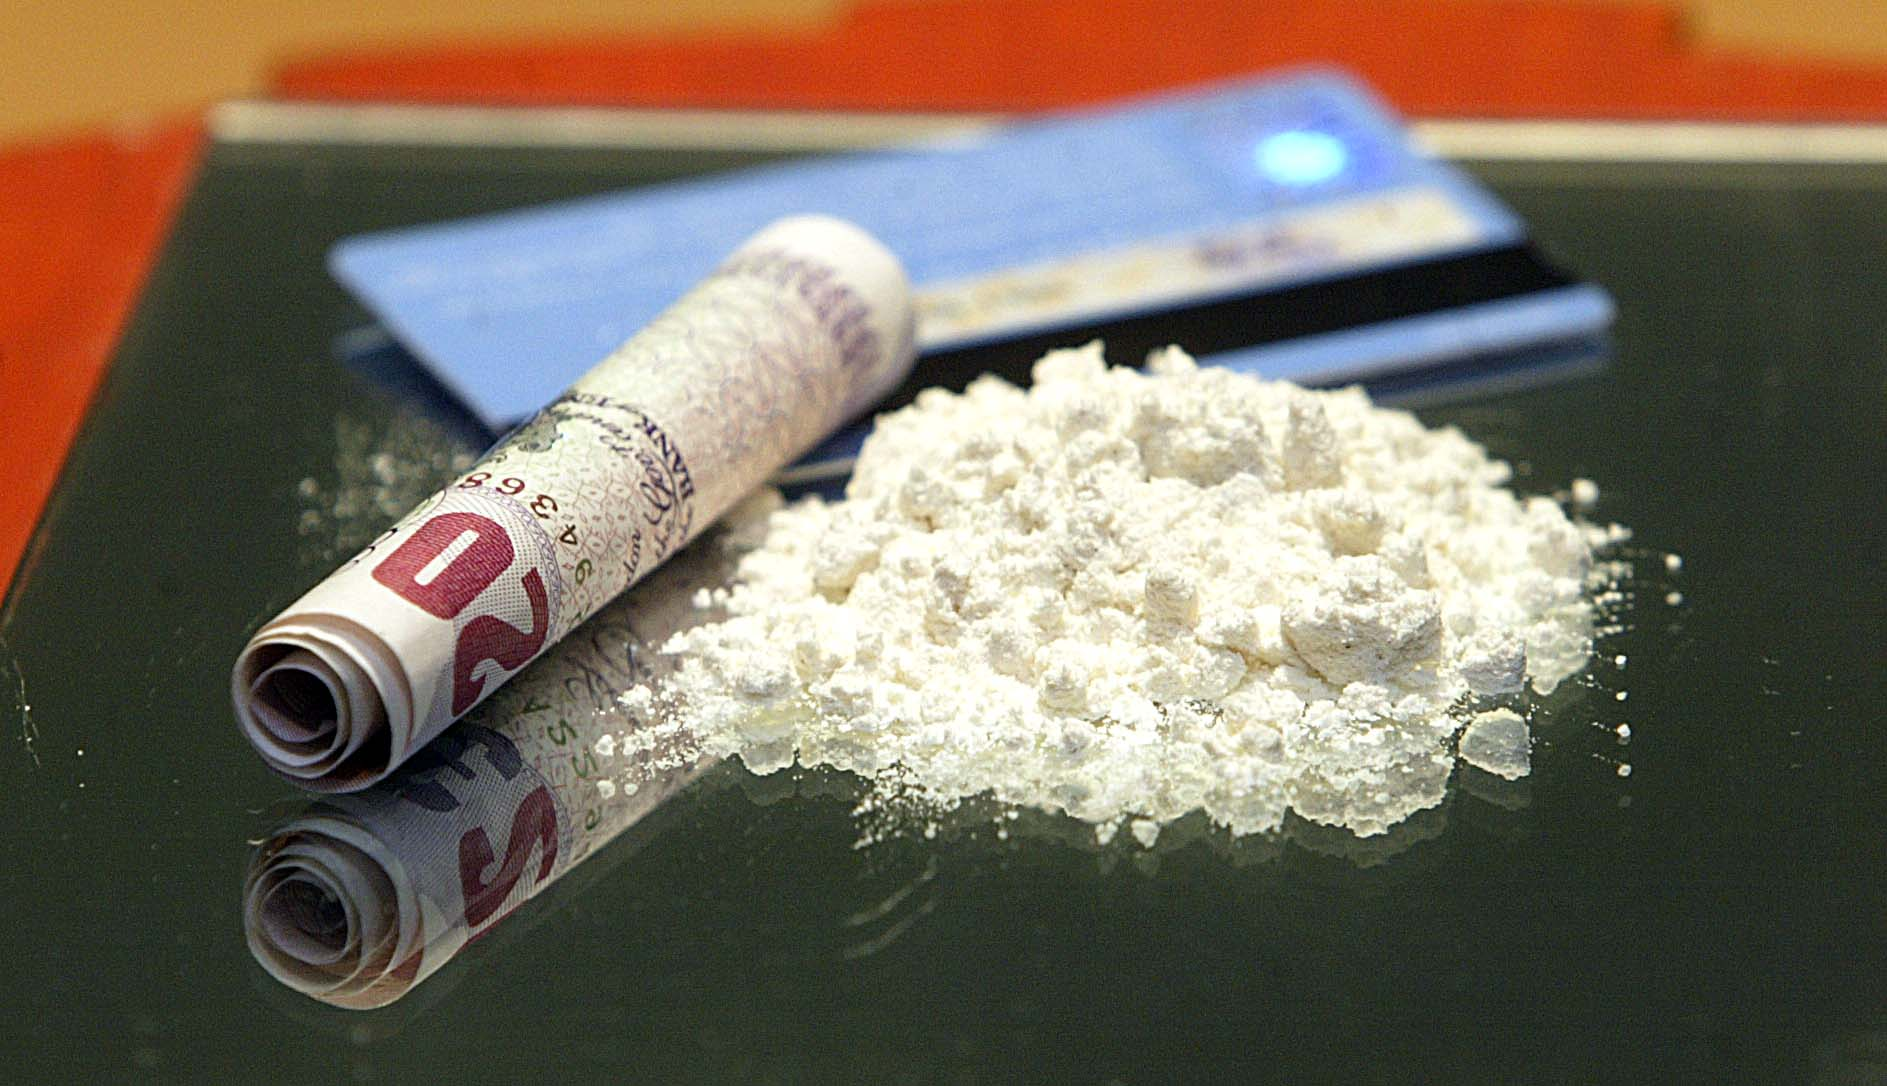 Several wraps of cocaine were found during the raid in